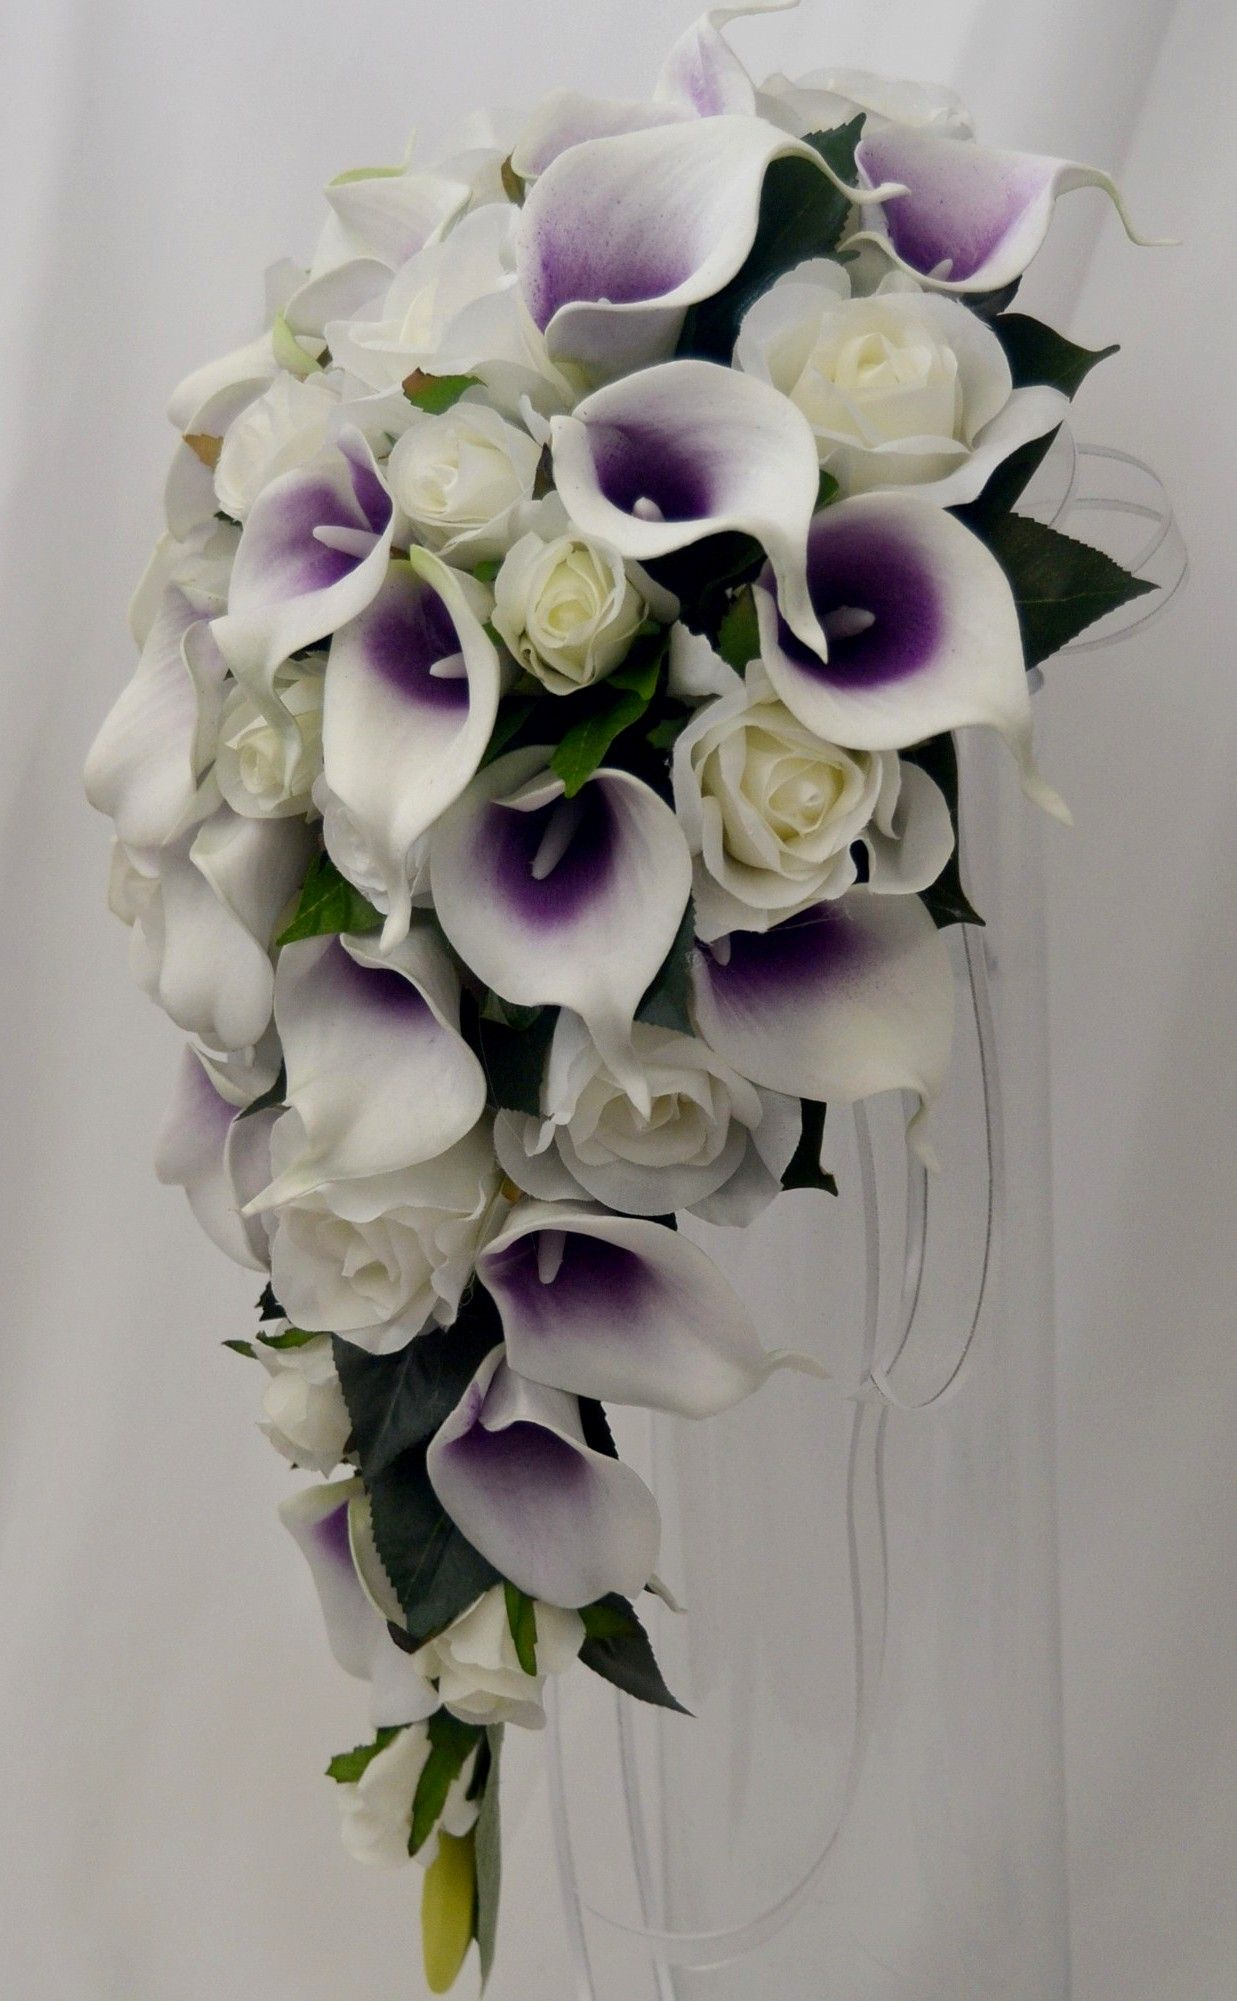 Latex picasso calla lily cream rose teardrop bouquet bouquets latex picasso calla lily cream rose teardrop bouquet lily wedding floral wedding purple izmirmasajfo